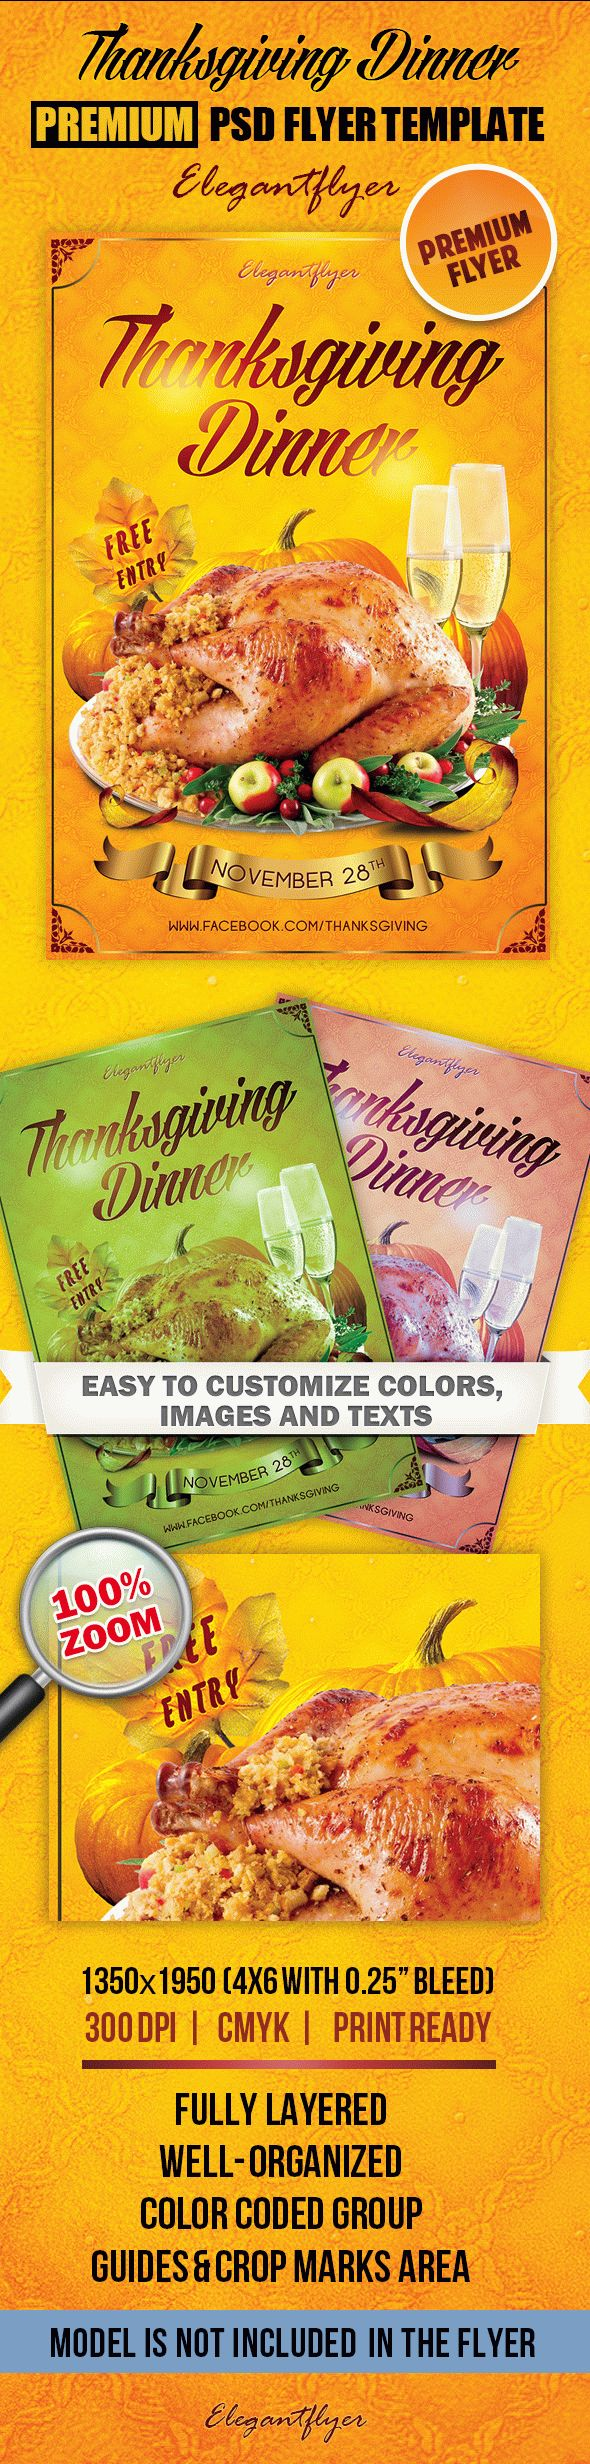 Thanksgiving Dinner – Premium Club flyer PSD Template